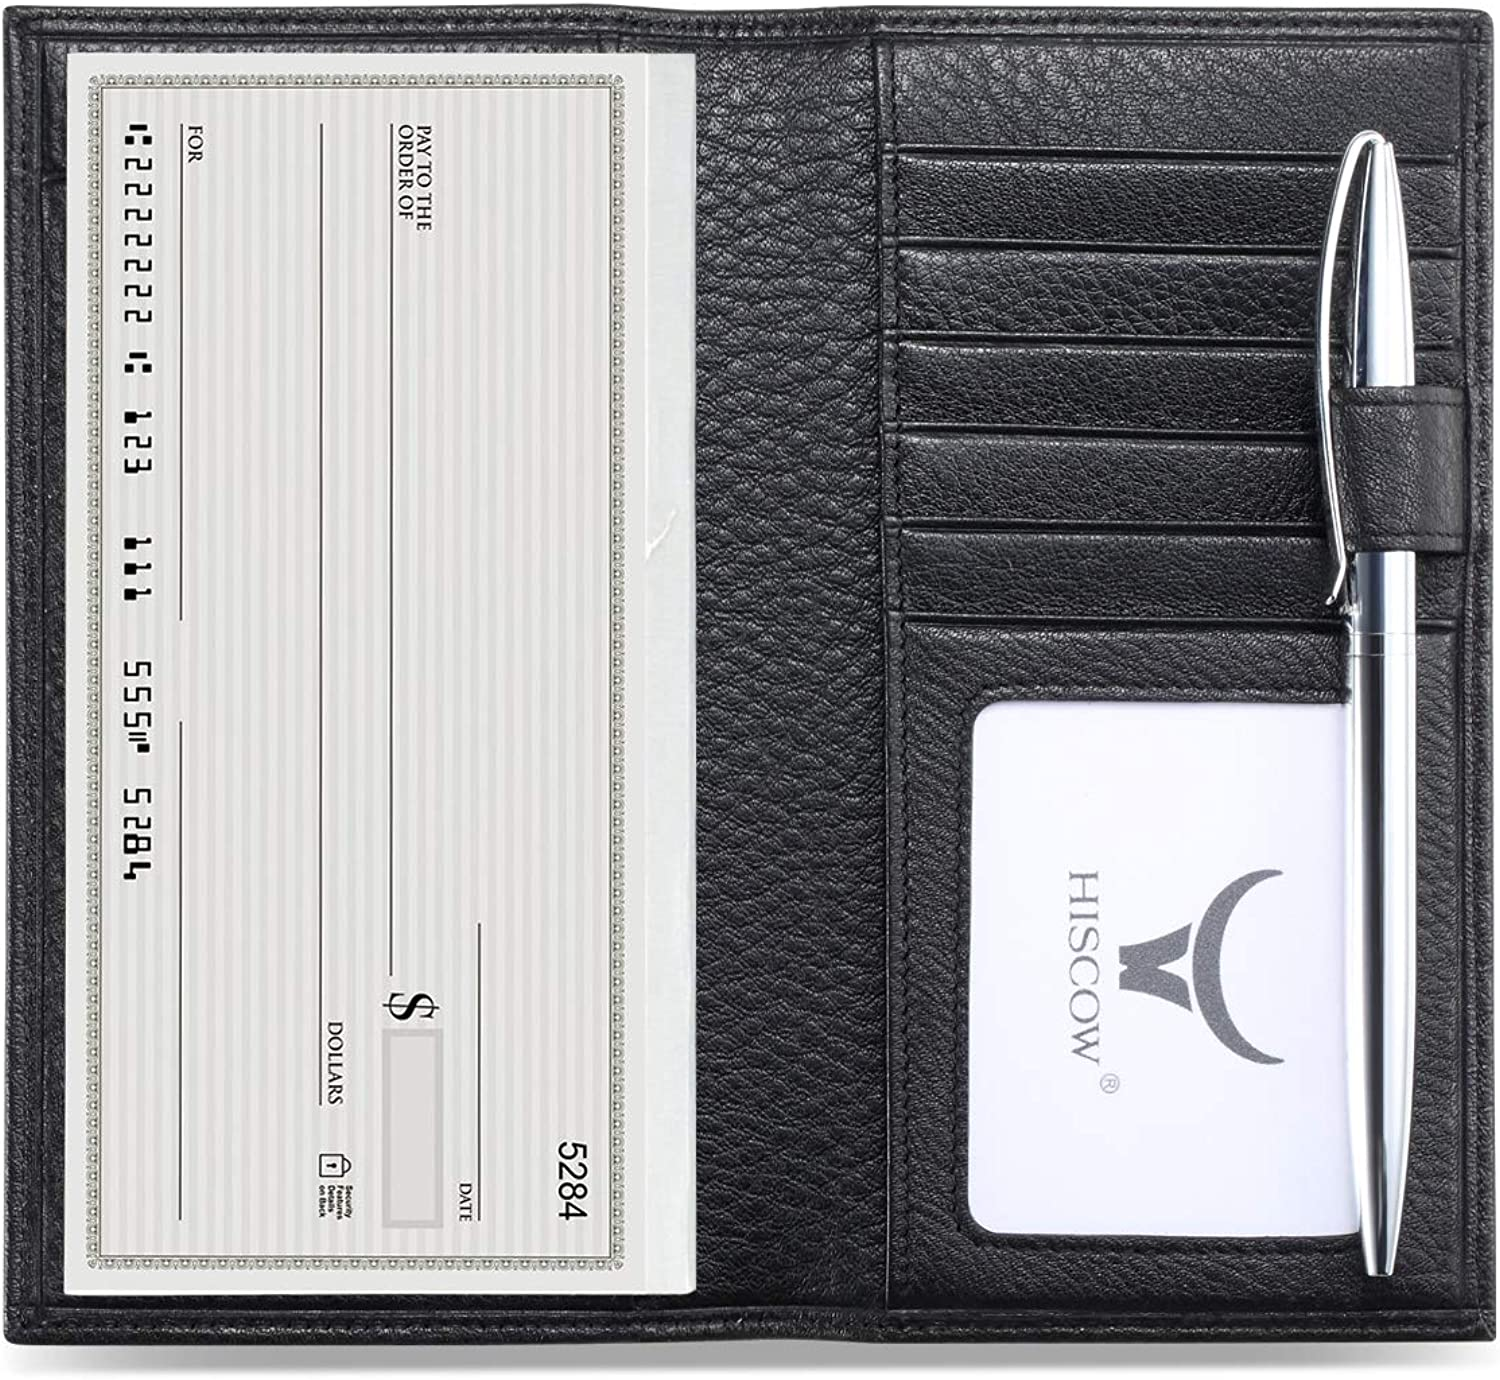 HISCOW Soft Leather Checkbook Cover & Card Holder with Divider  Italian Calfskin